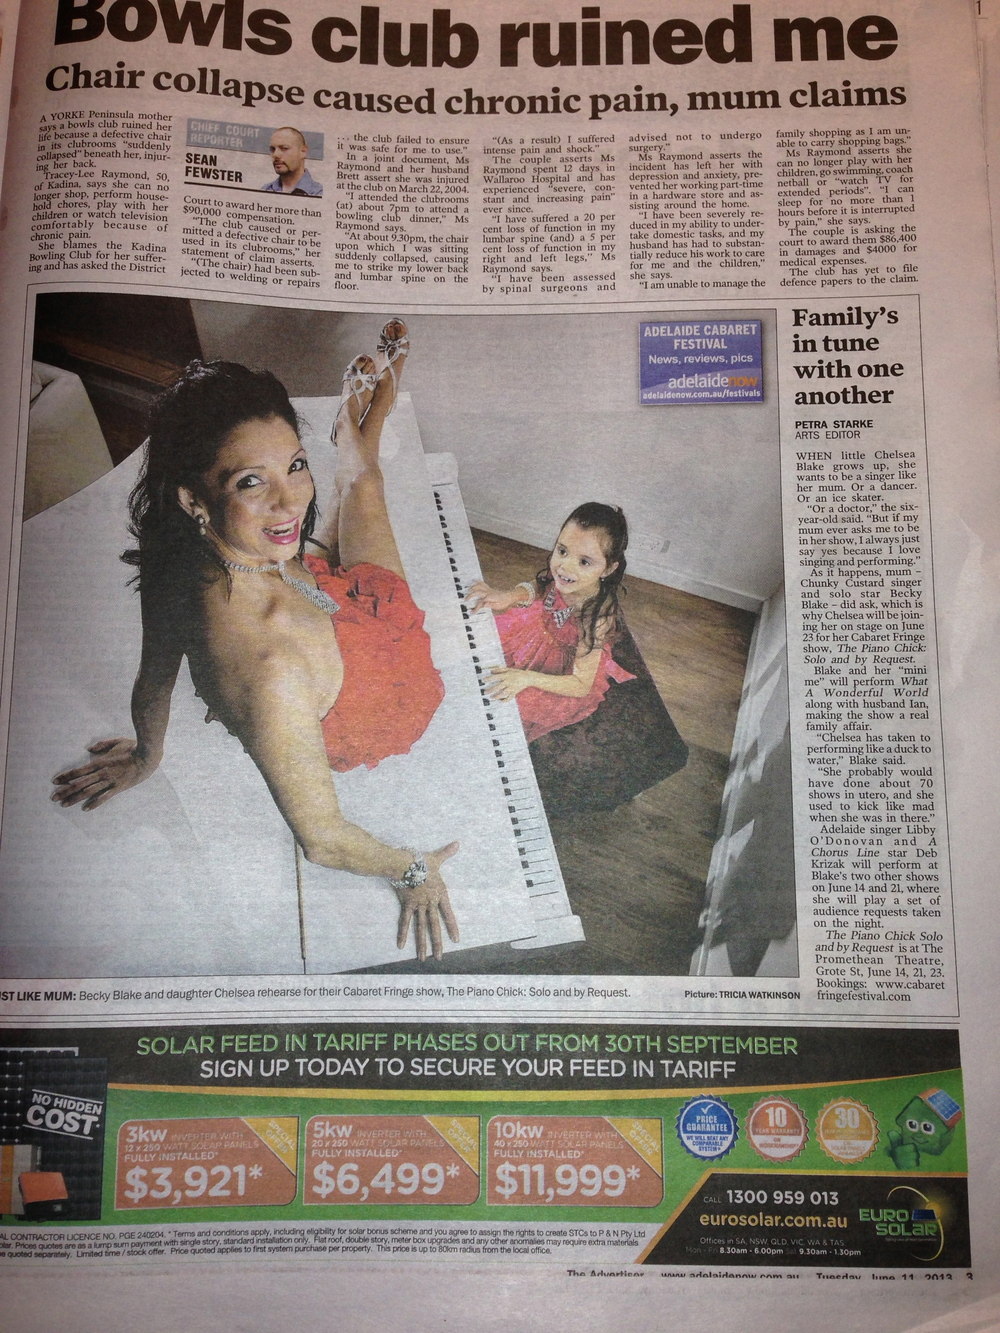 Publicity for The Piano Chick, Solo and By Request for the Adelaide Cabaret Fringe Festival, The Advertiser, June 11th, 2013.